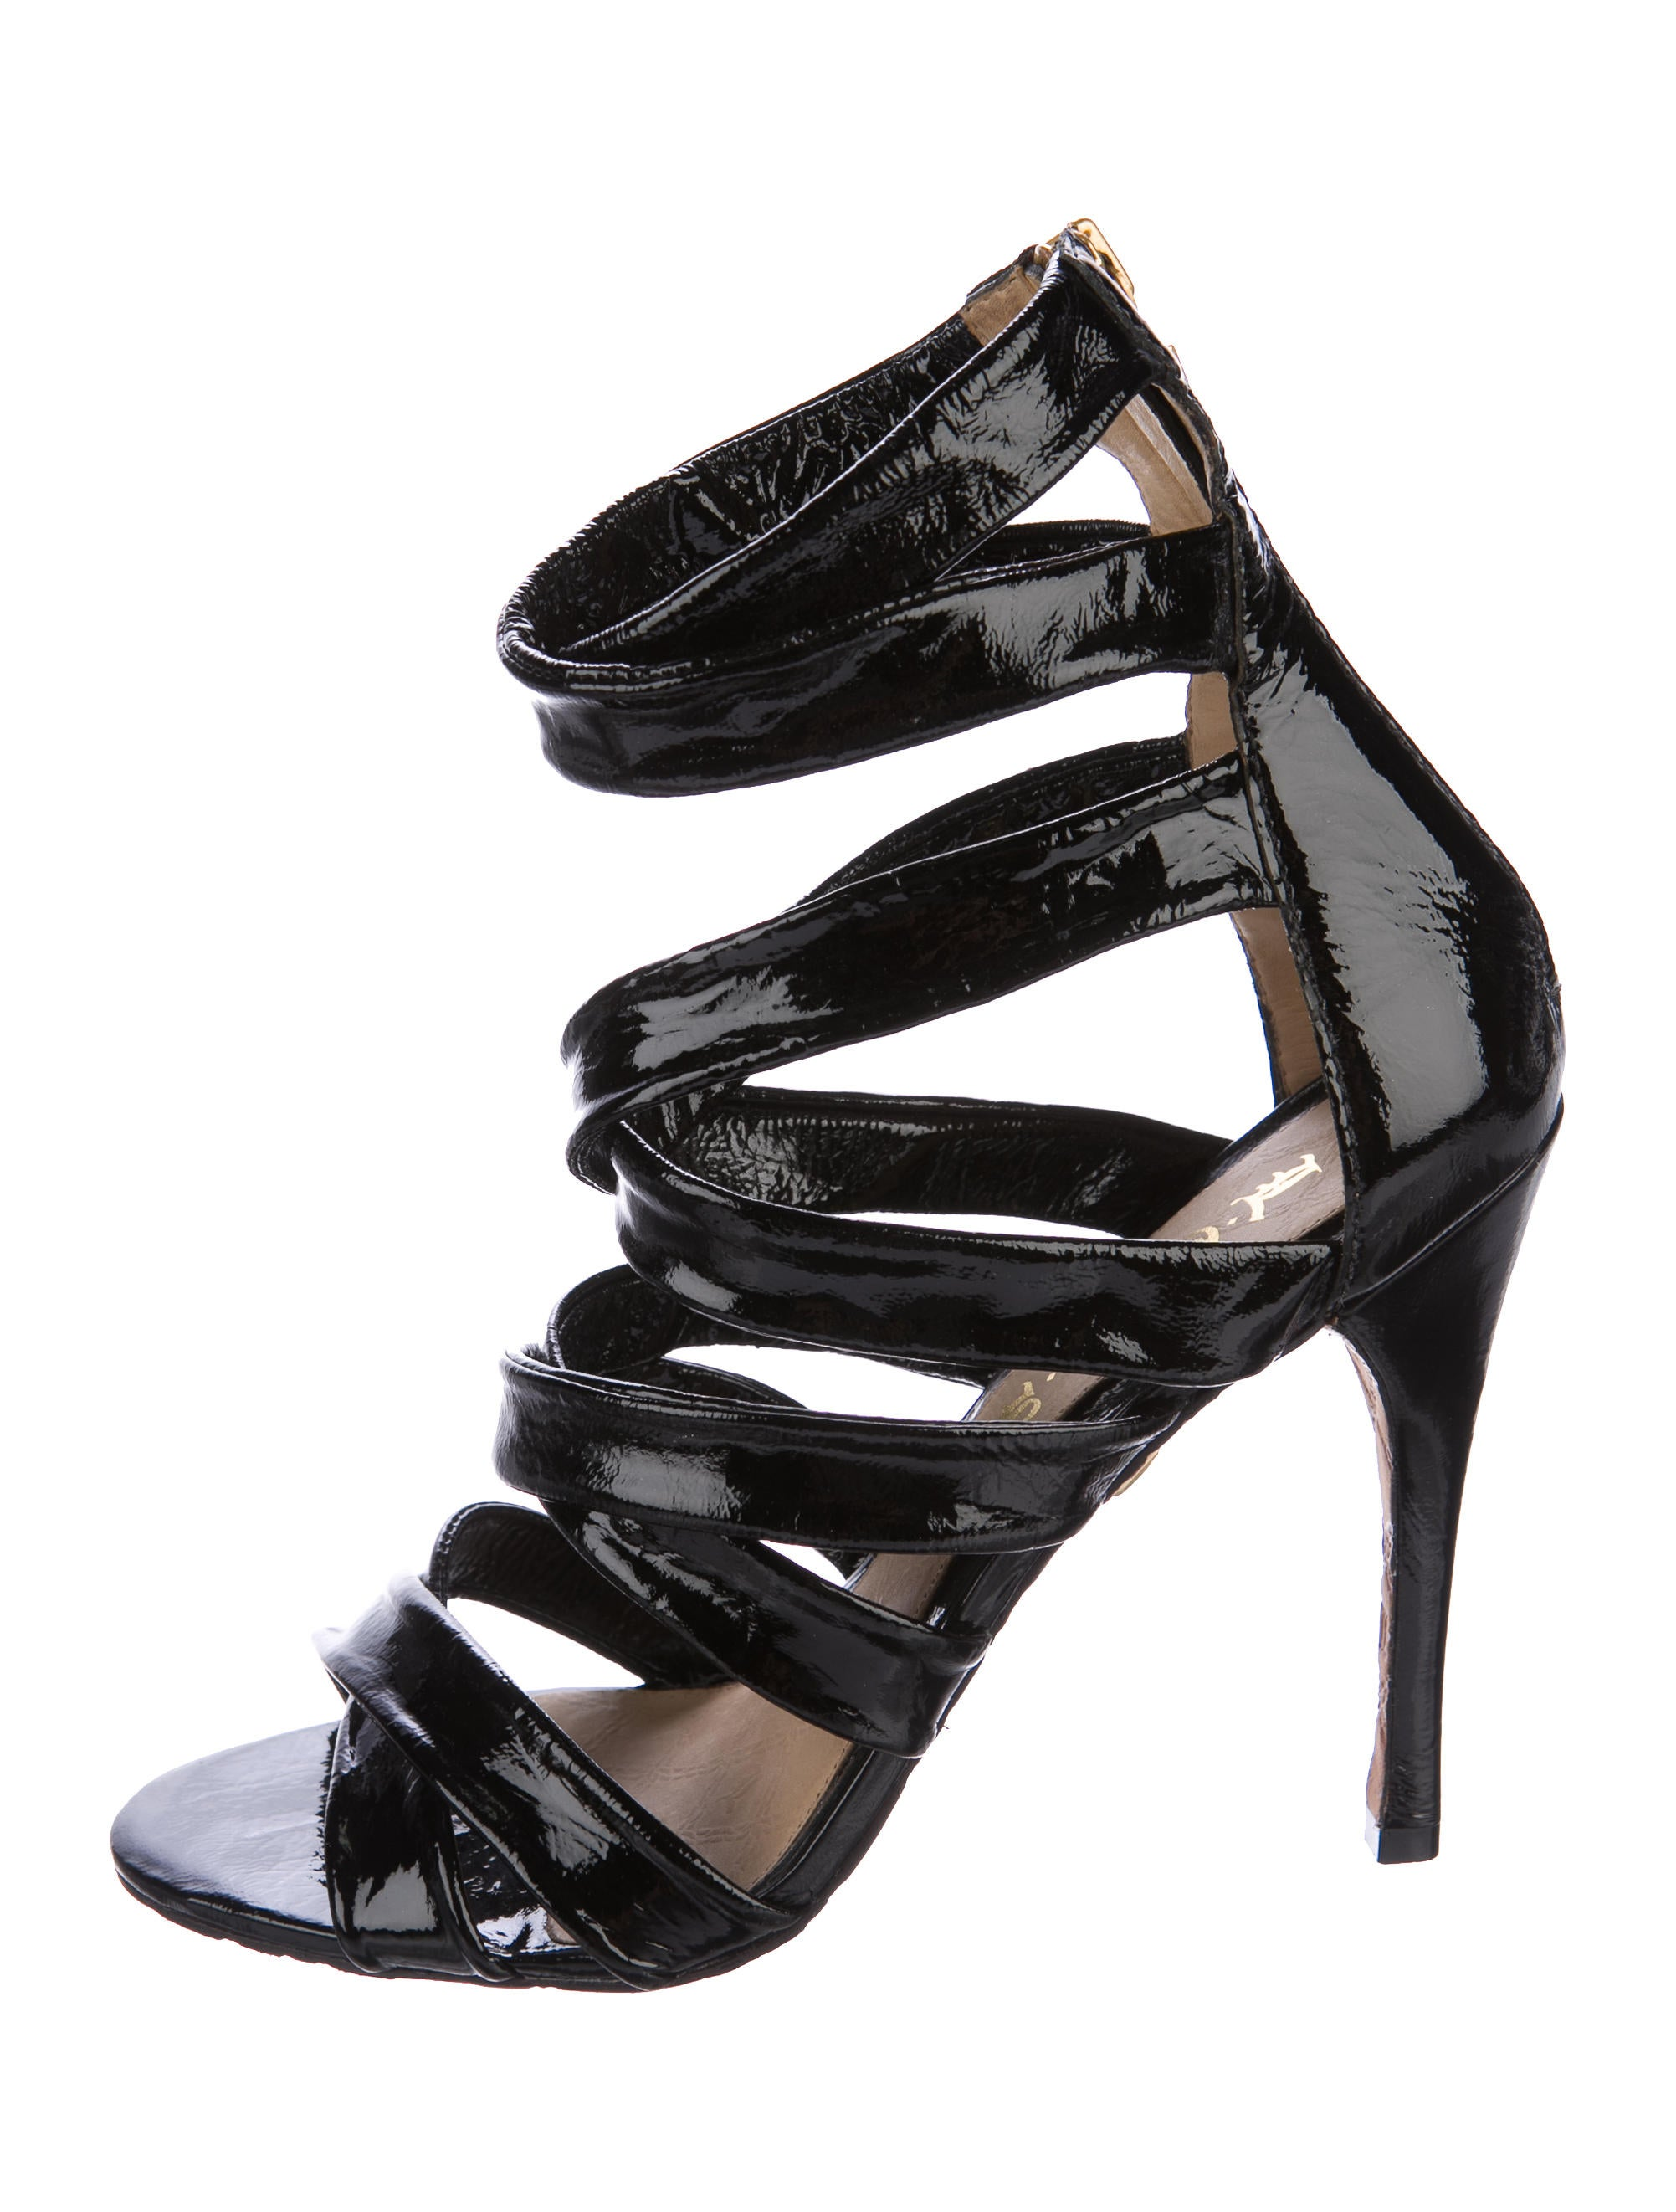 free shipping online LAMB Cage Patent Leather Sandals release dates authentic wYGxH0ARV